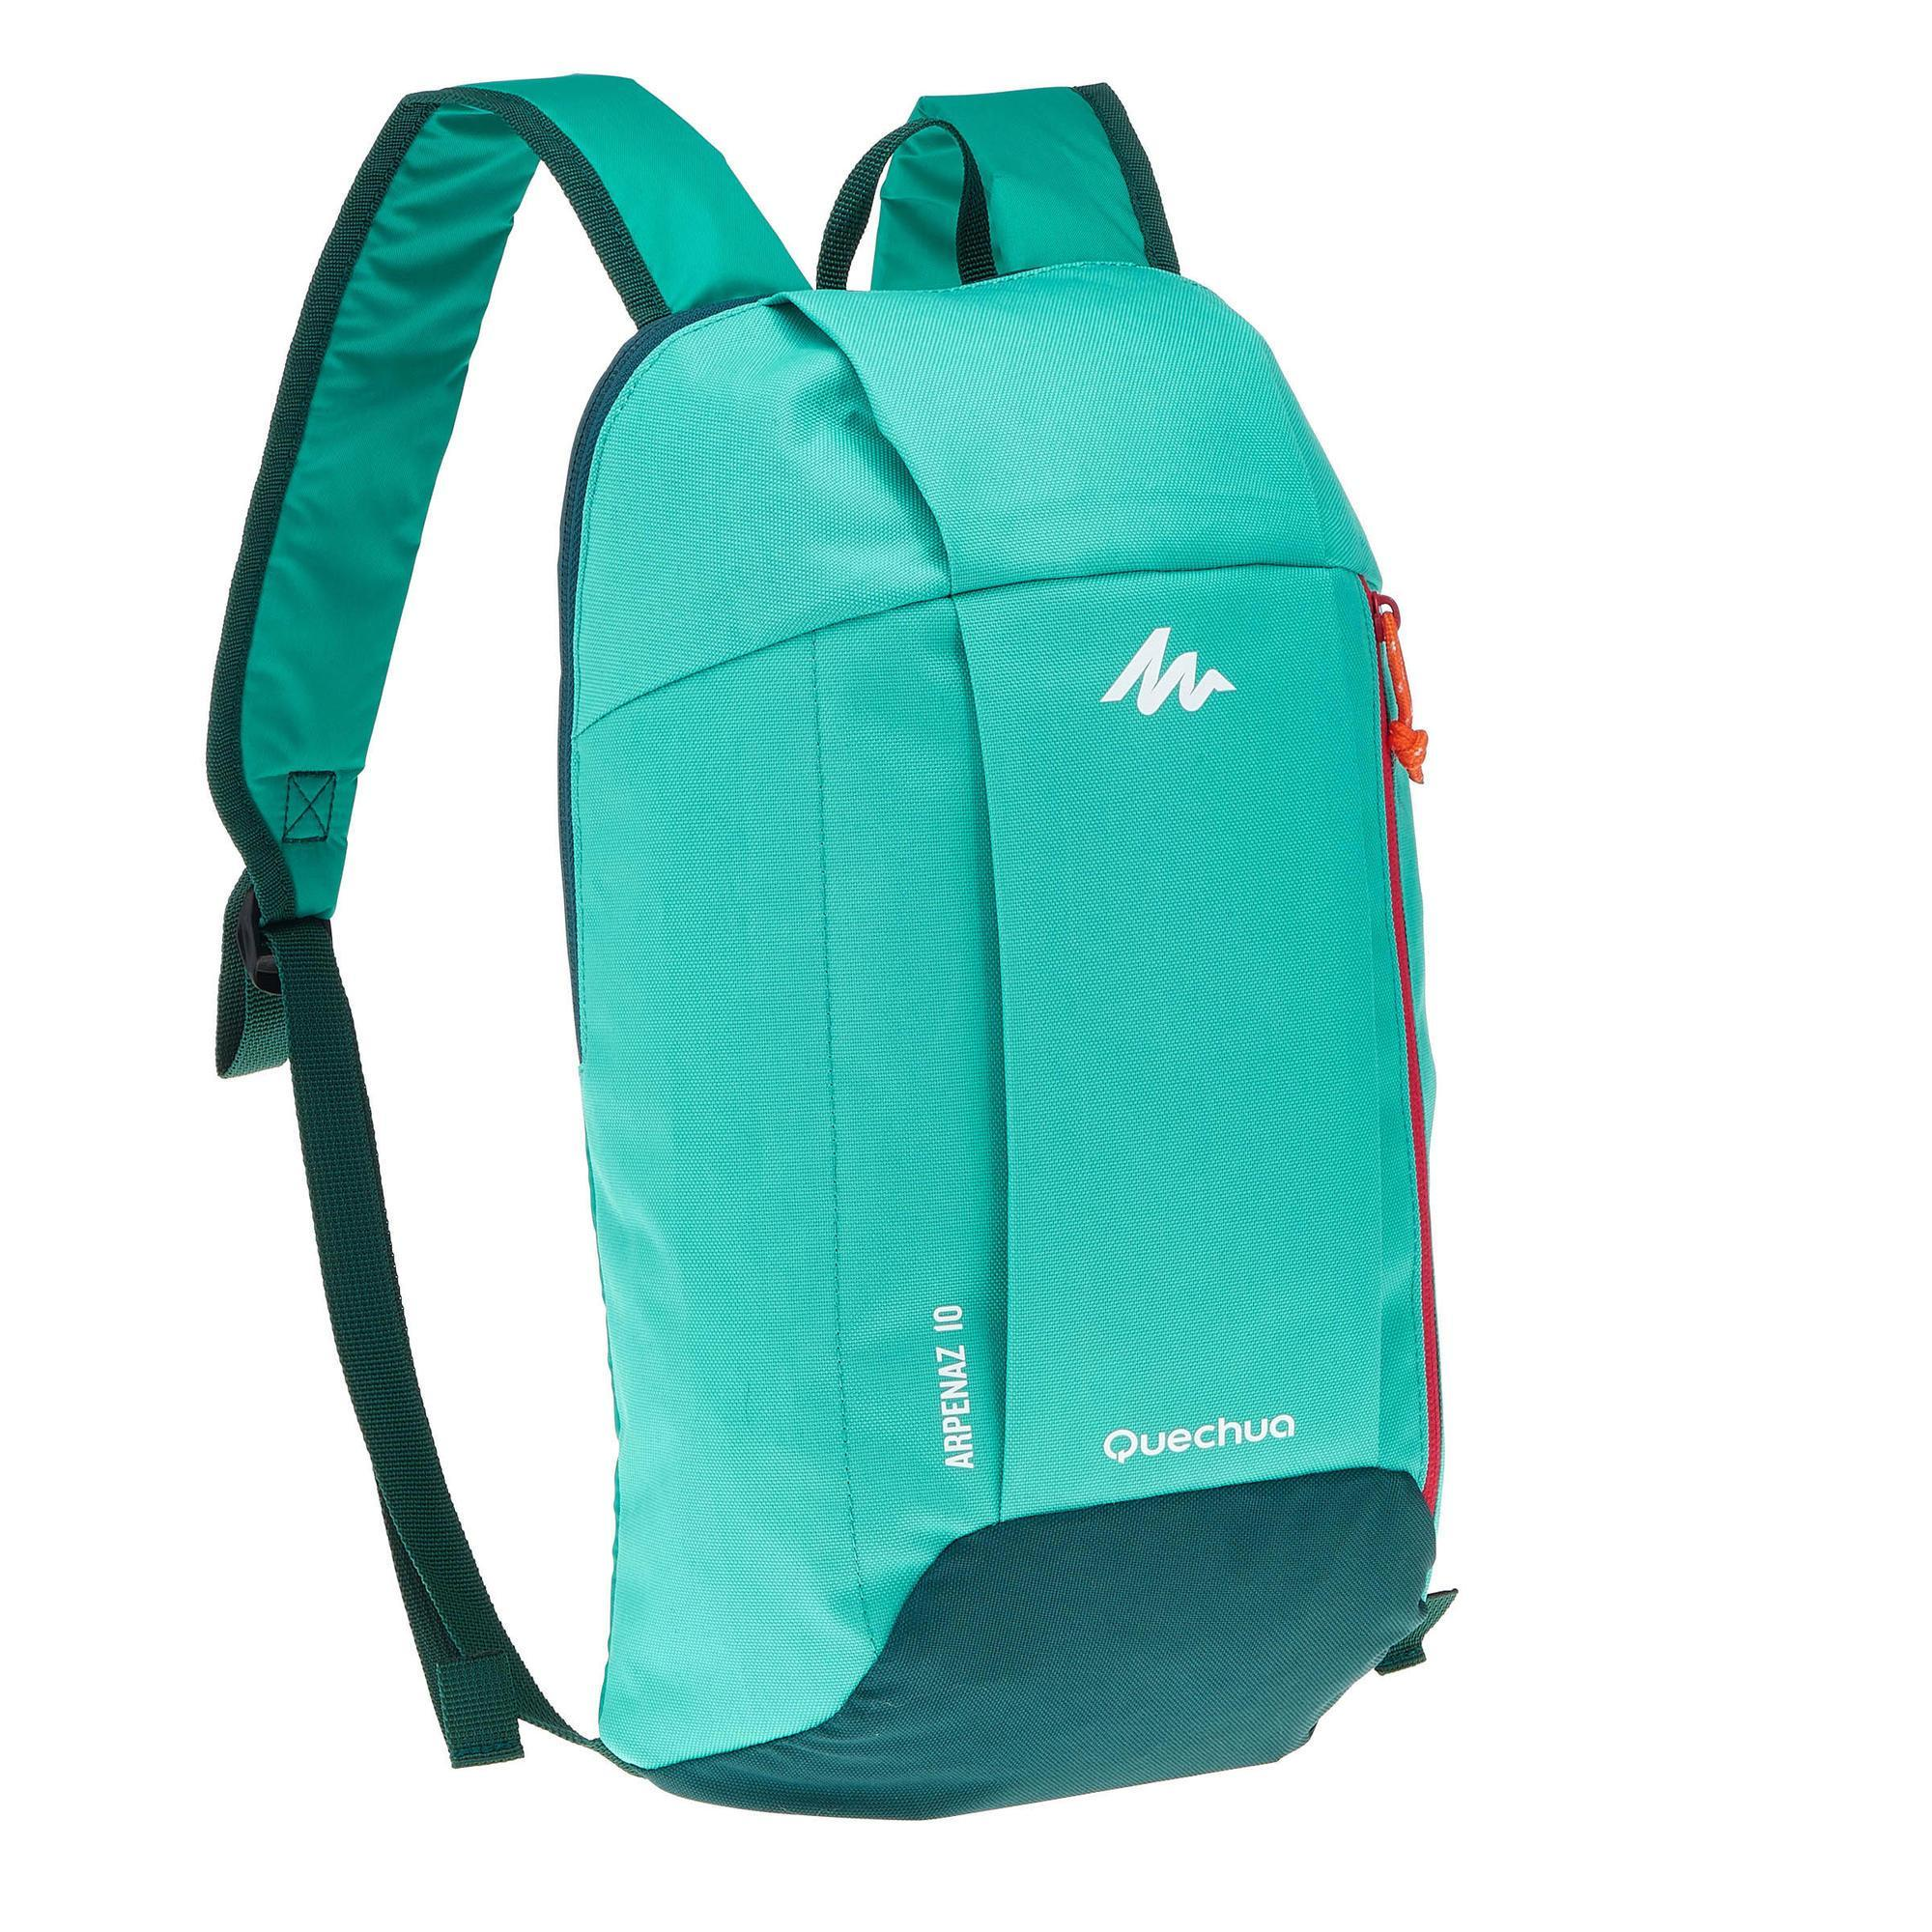 19029a9be15b1 Hiking Backpack 30l Nh100